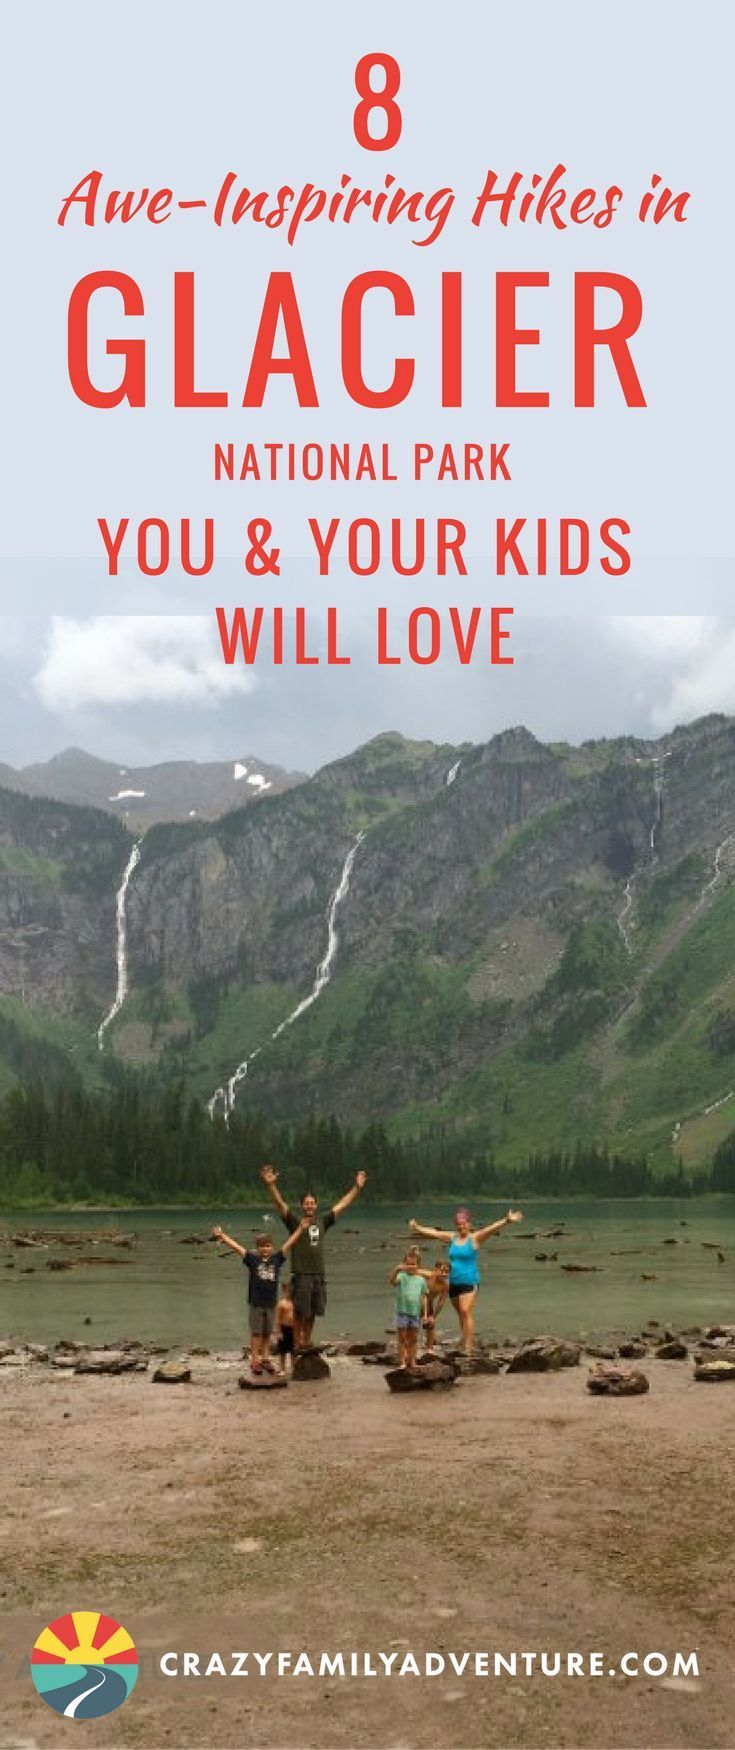 8 Awe-Inspiring Hikes in Glacier National Park You & Your Kids Will Love! Discover 8 of the best #hikes in #Montana to trek #withkids! #GlacierNationalPark, one of the most #beautifulplaces in the #UnitedStates, offers some pretty breathtaking #trails that even your kids will love!